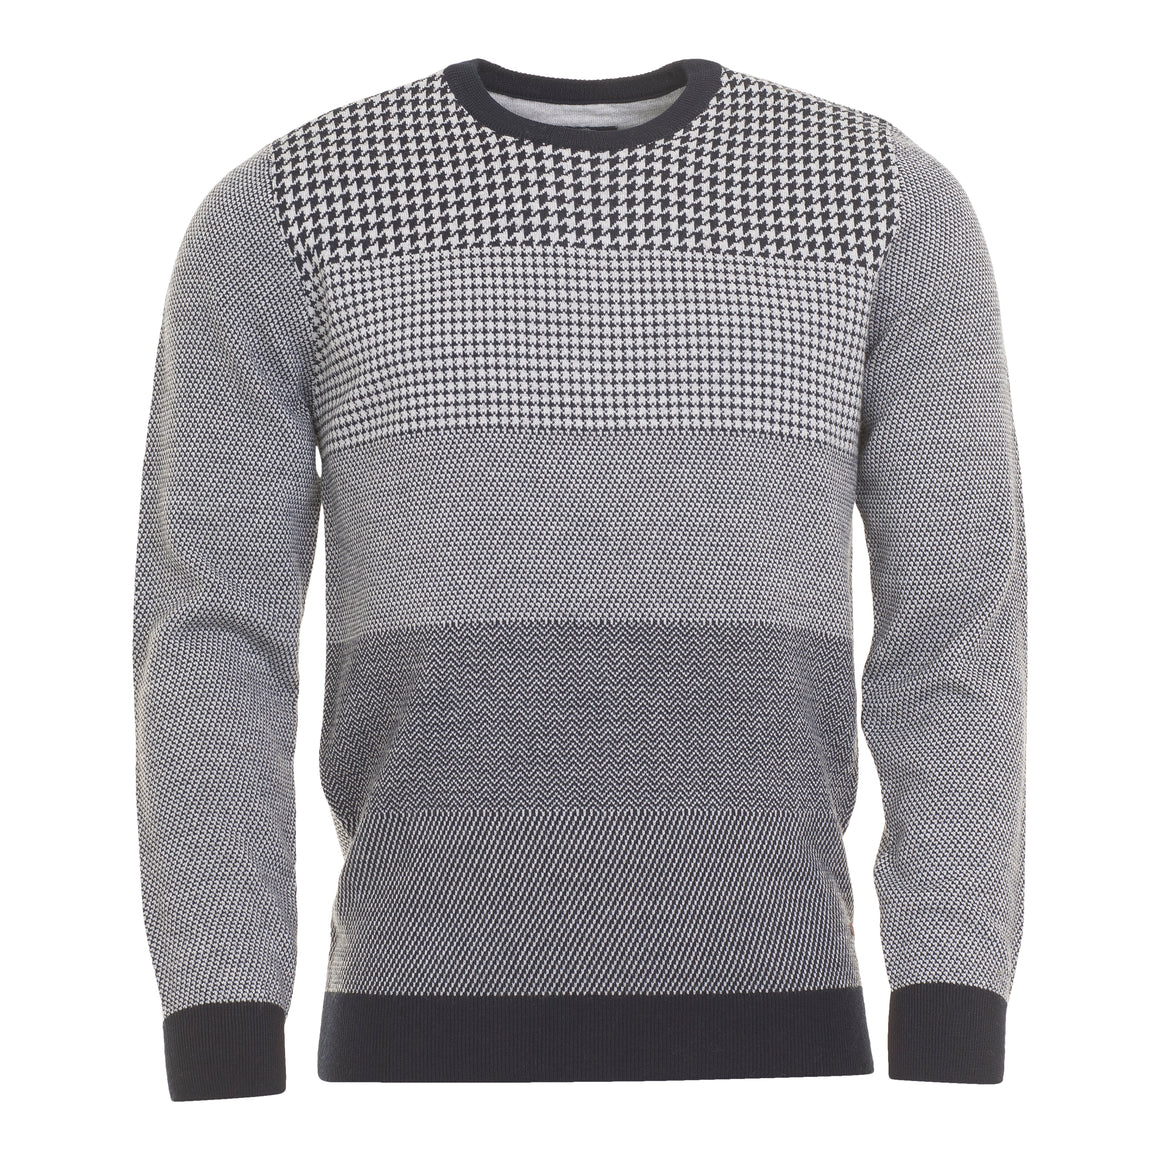 Houndstooth Knit for Men in Grey